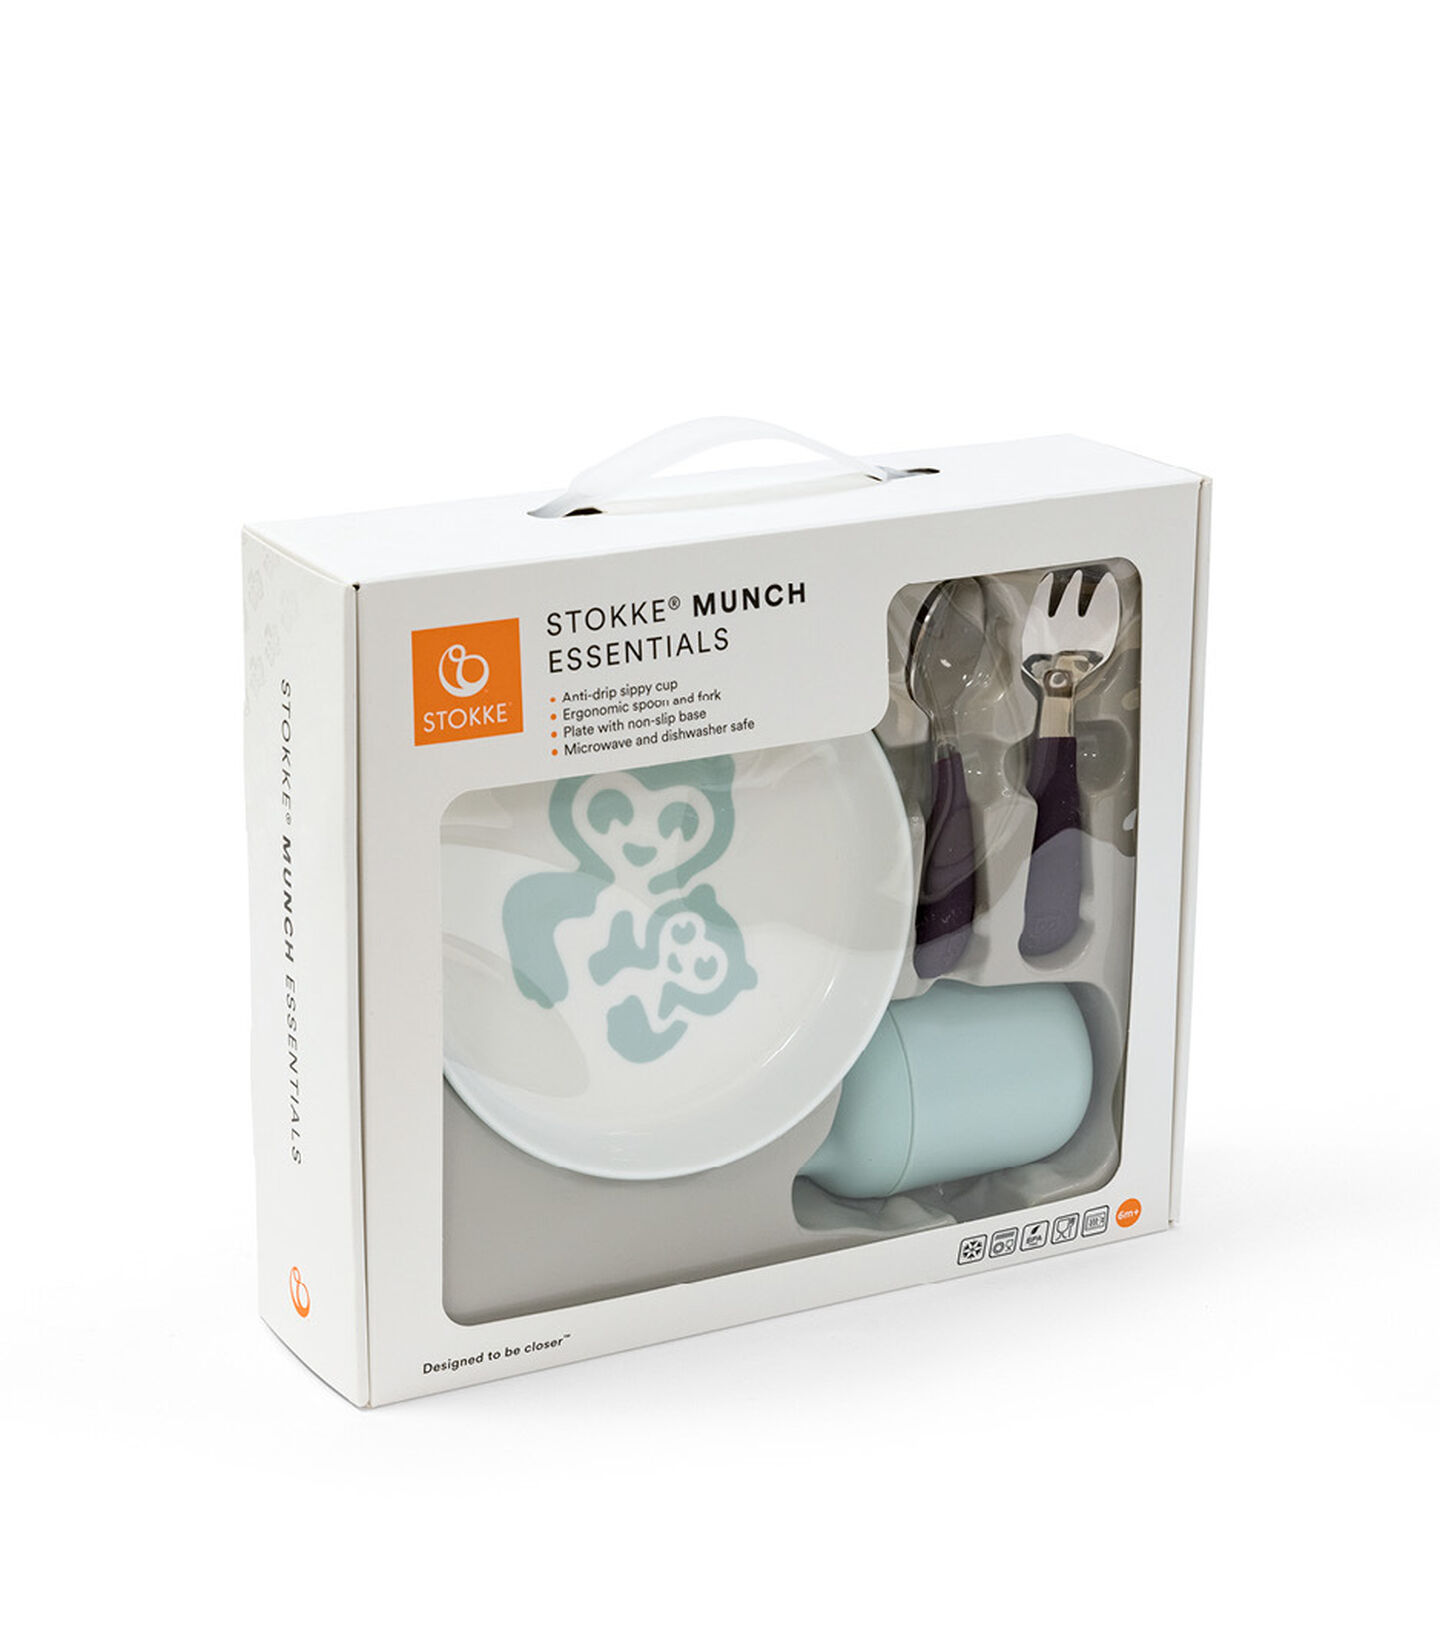 Stokke™ Munch™ Essentials in End User Packaging box